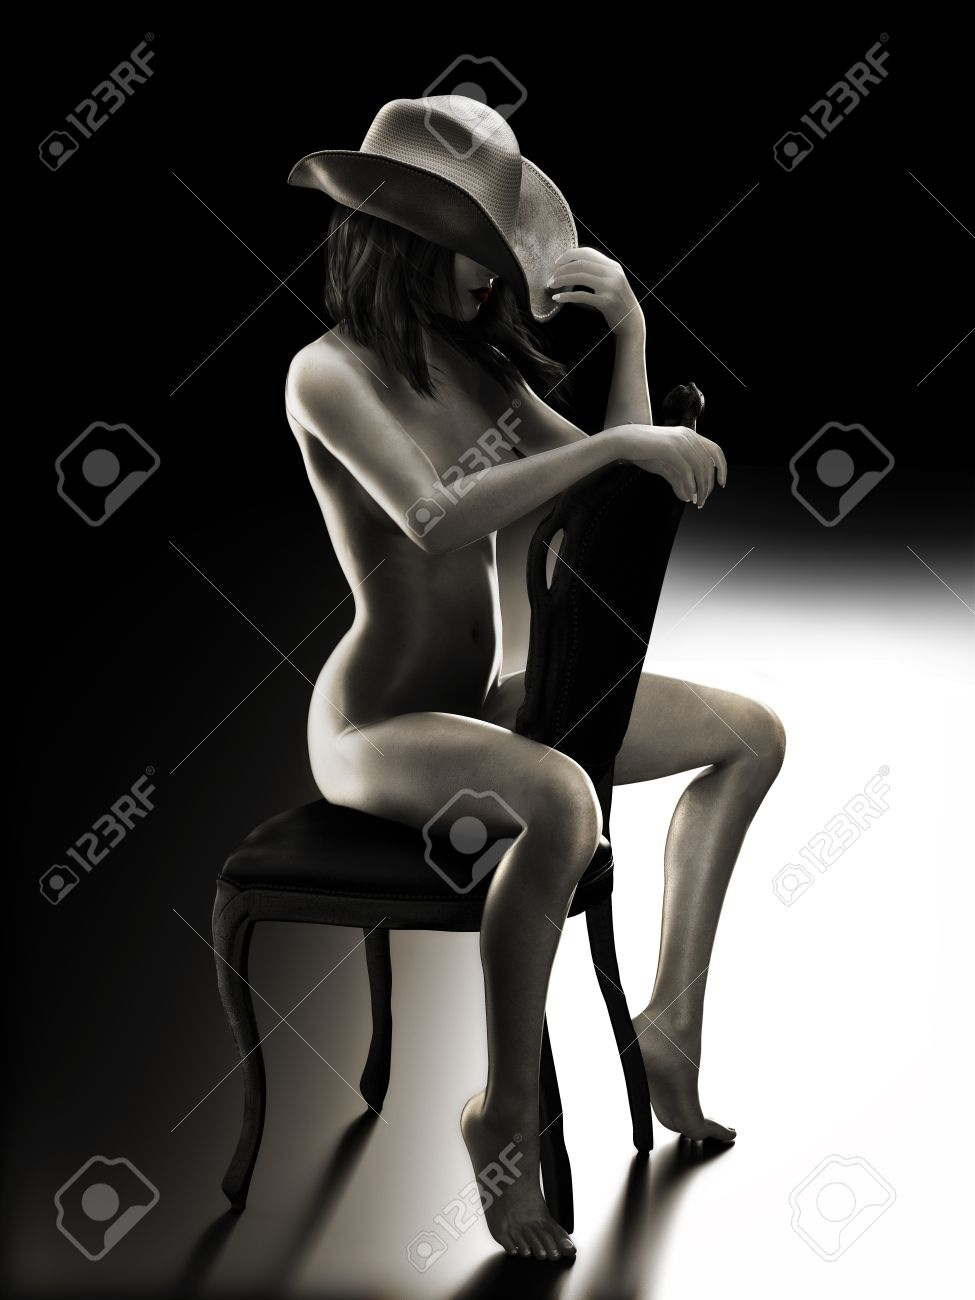 Sexy fit woman sitting on a chair wearing a cowboy hat with Studio lighting   Photo realistic 3d model scene in Black and White Stock Photo - 22111422